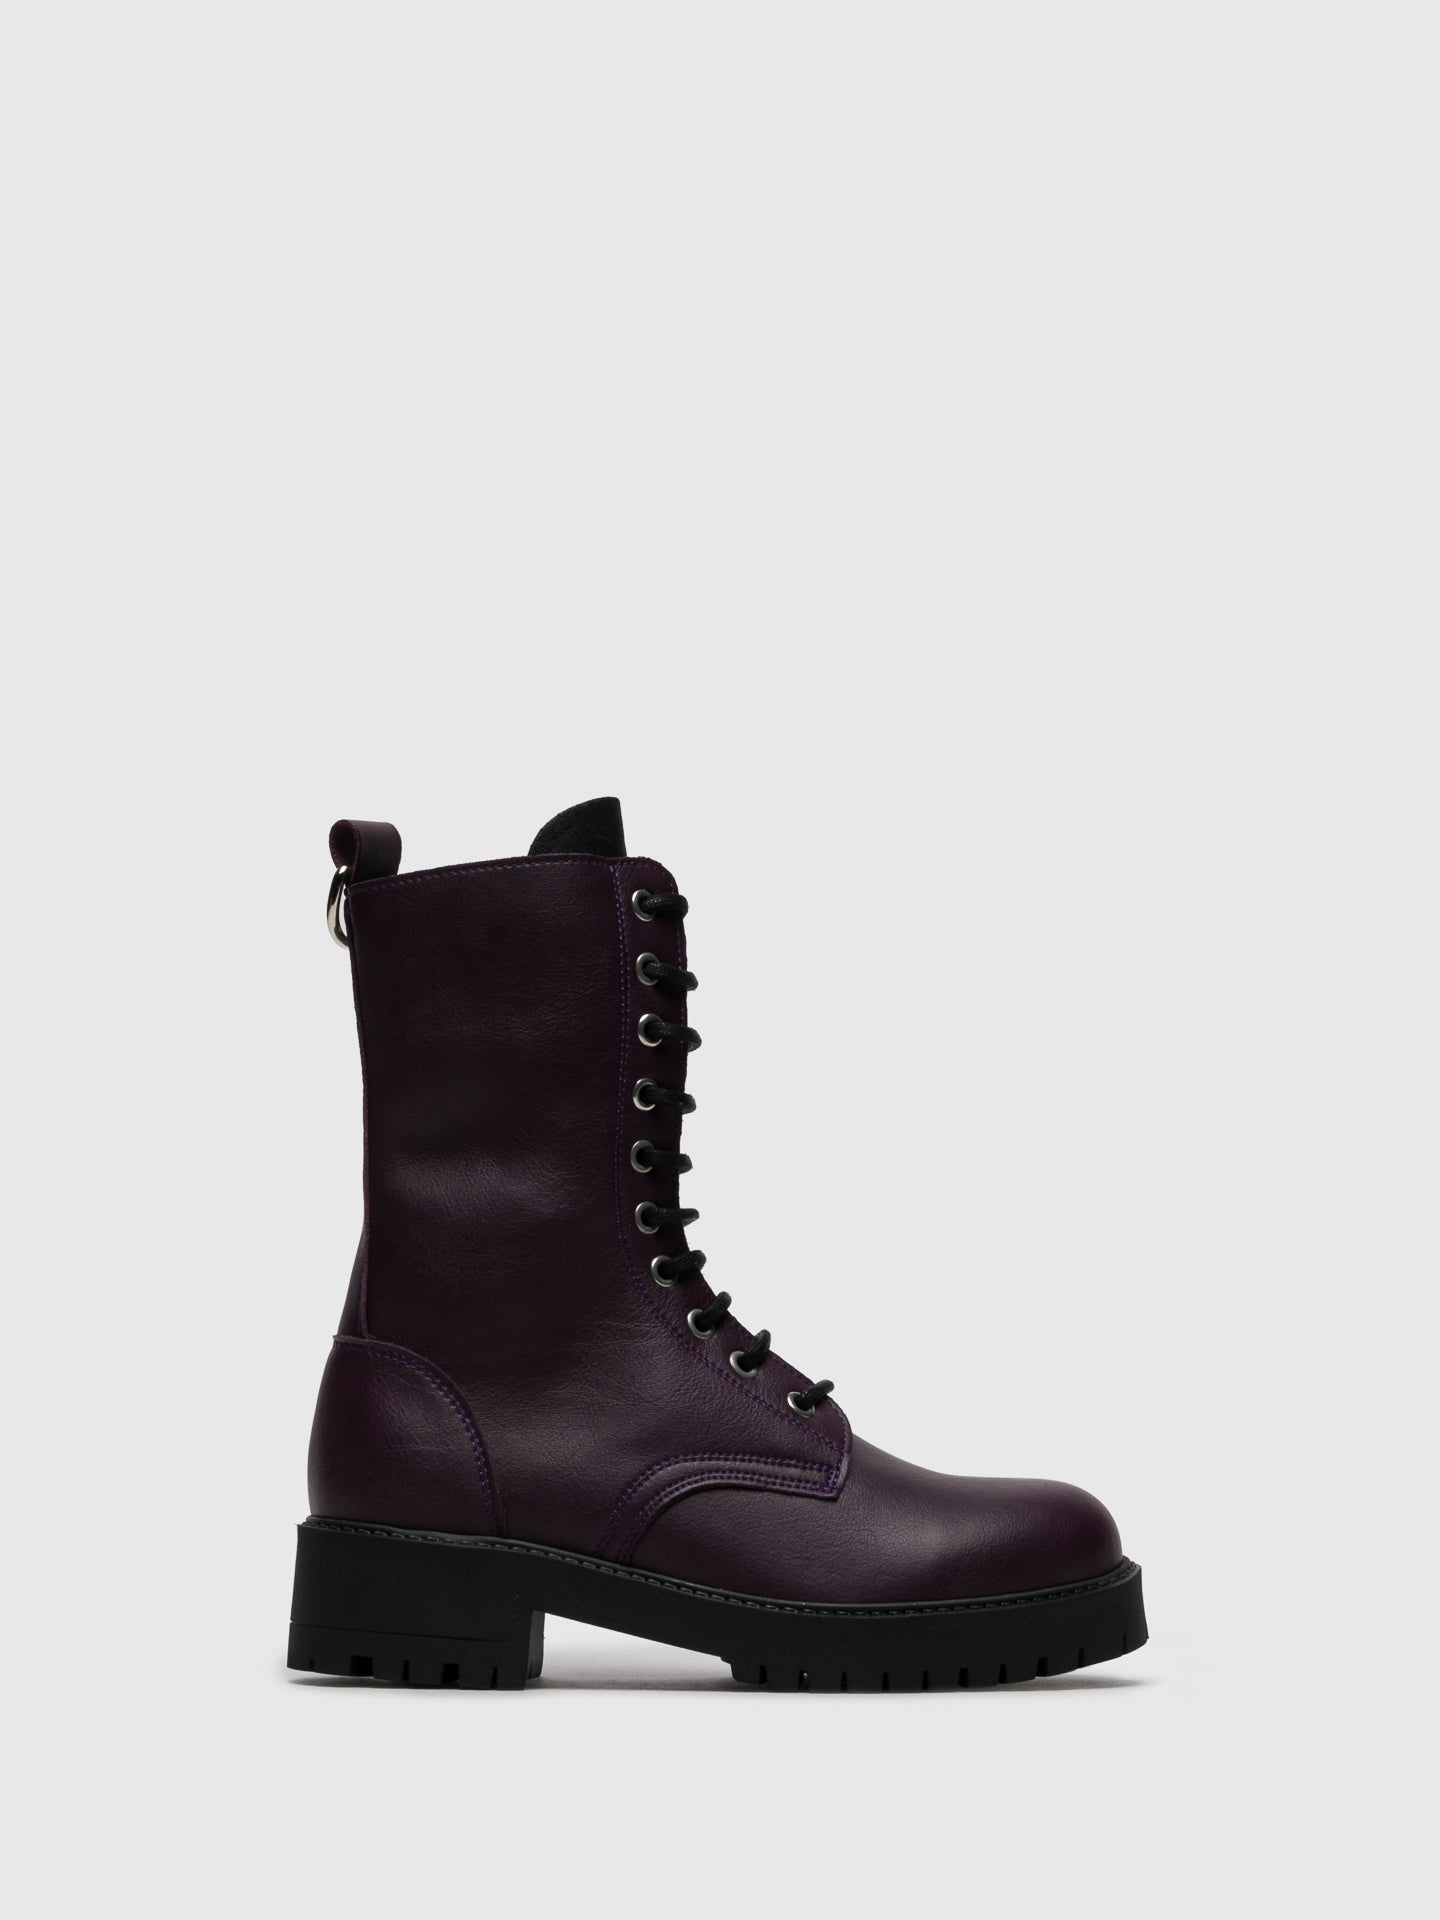 NAE Purple Zip Up Boots